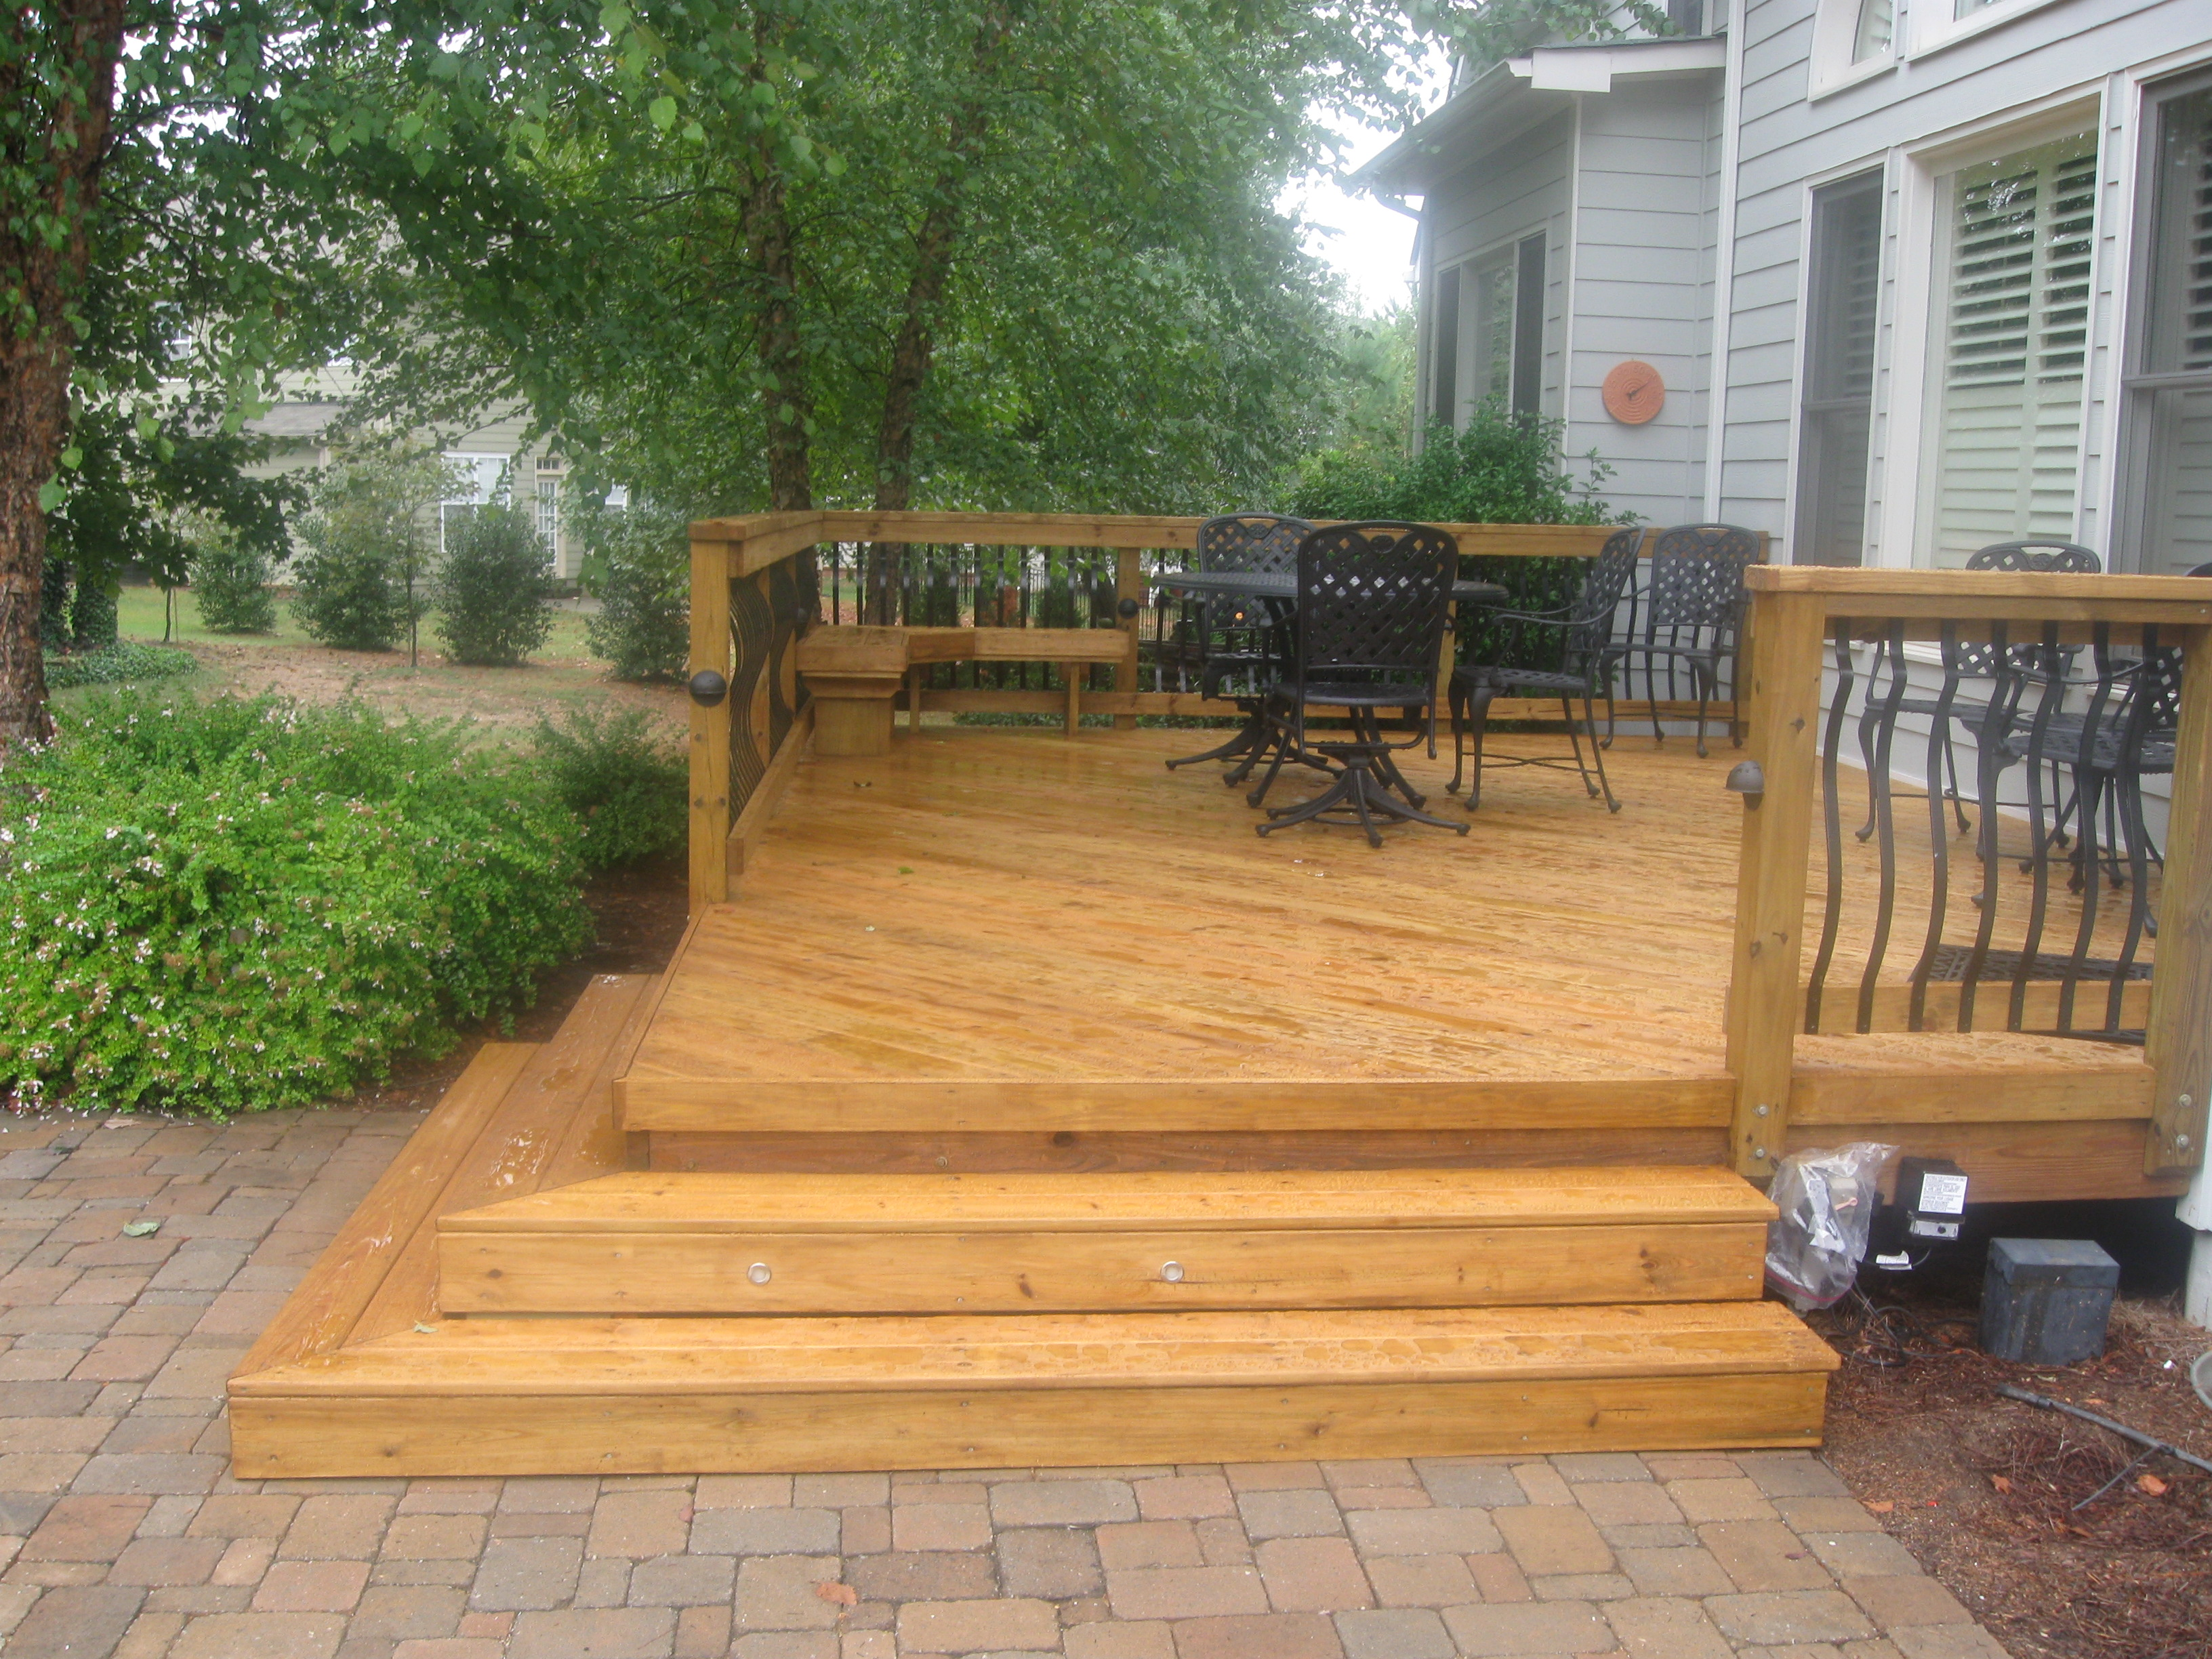 Wood Deck and Paver Patio